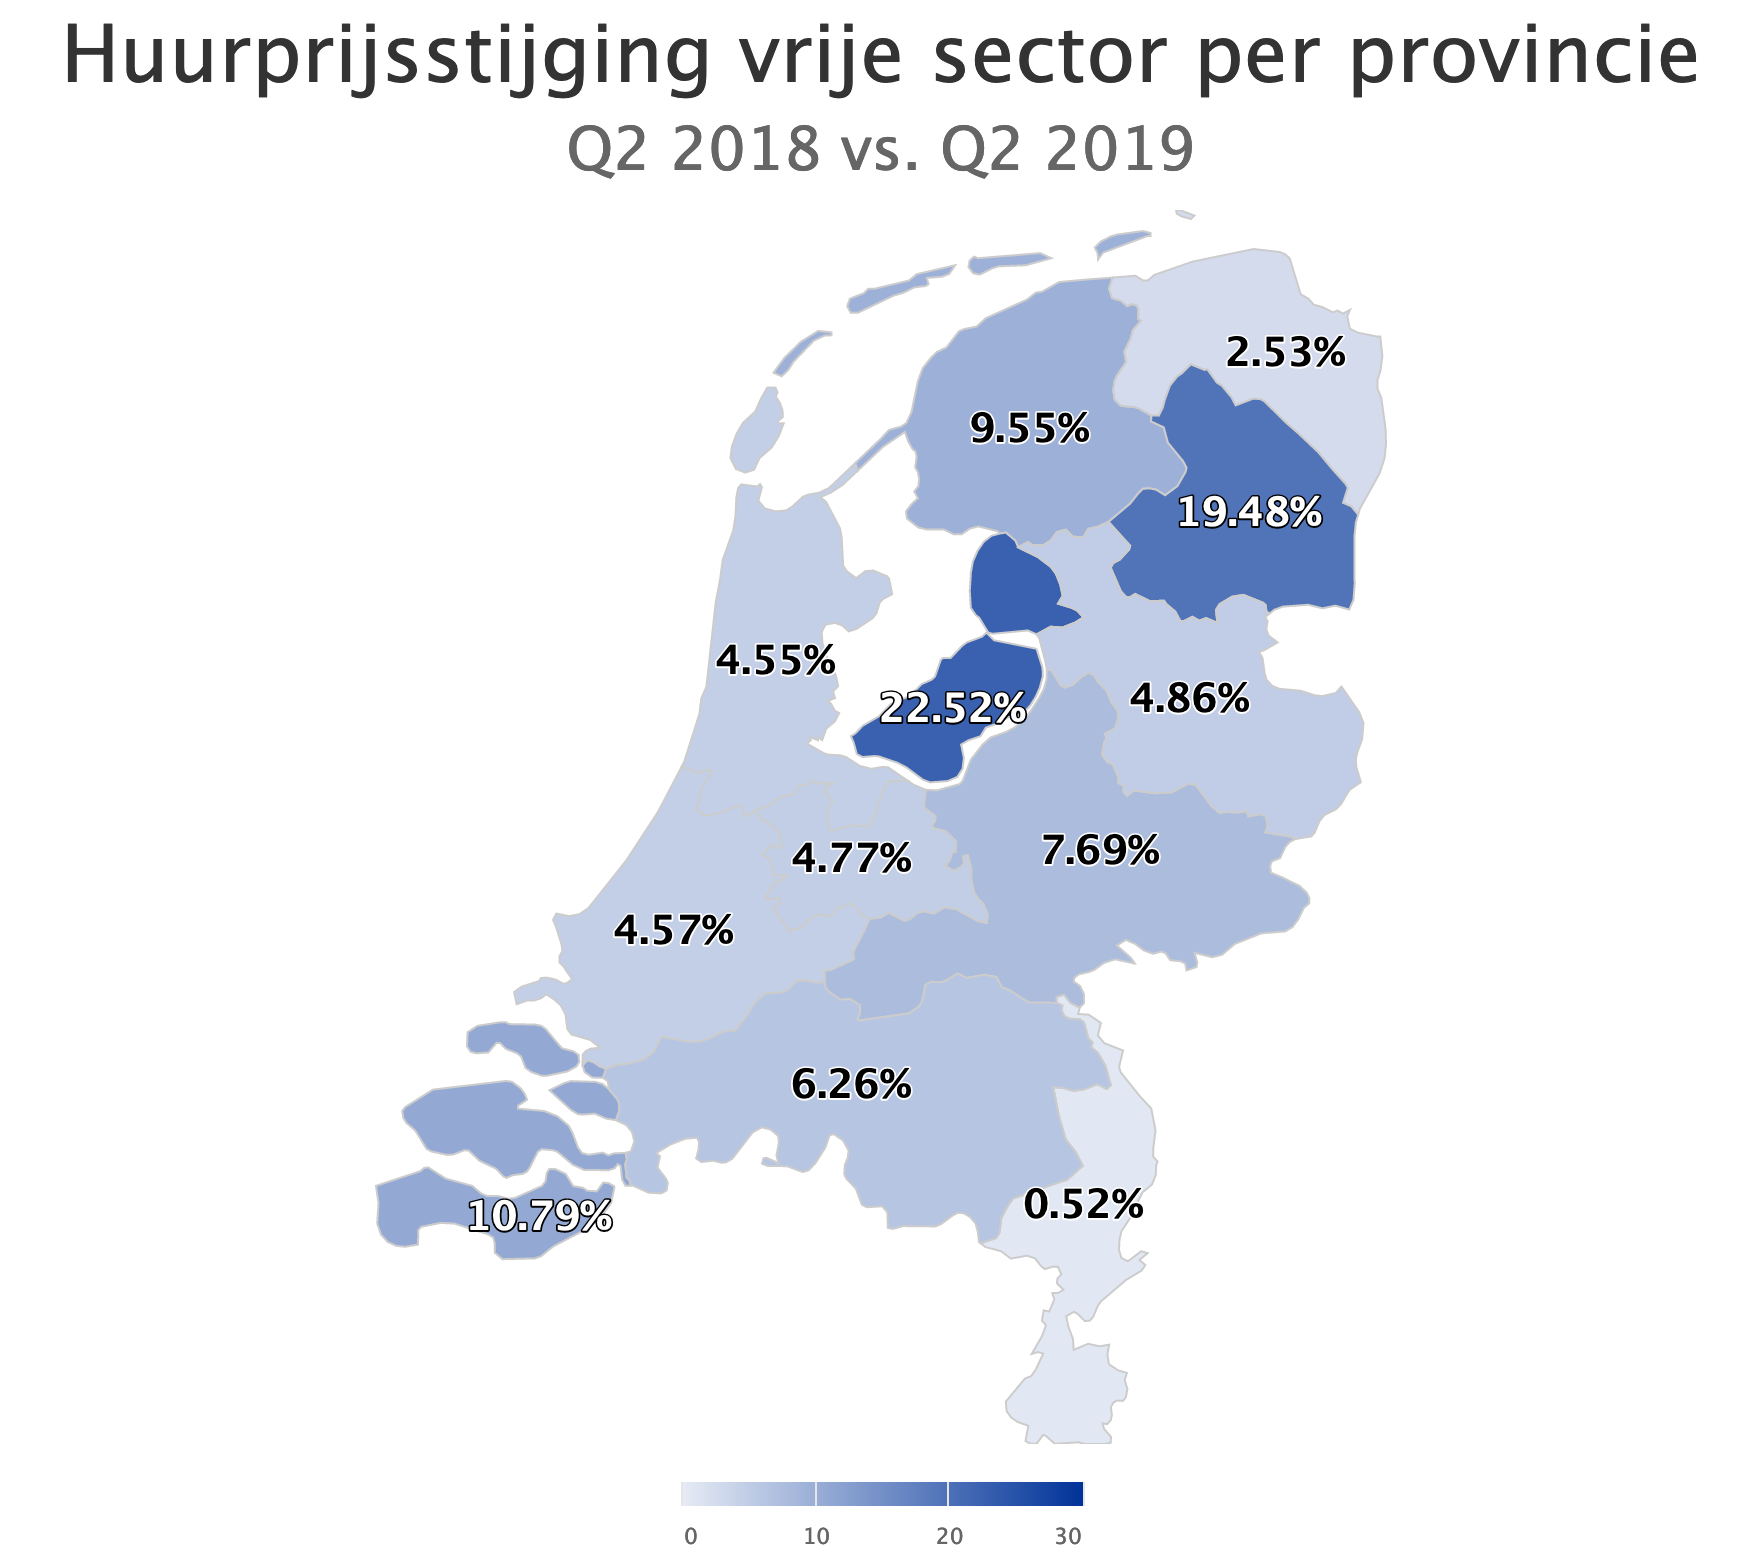 Rent increase free sector per province